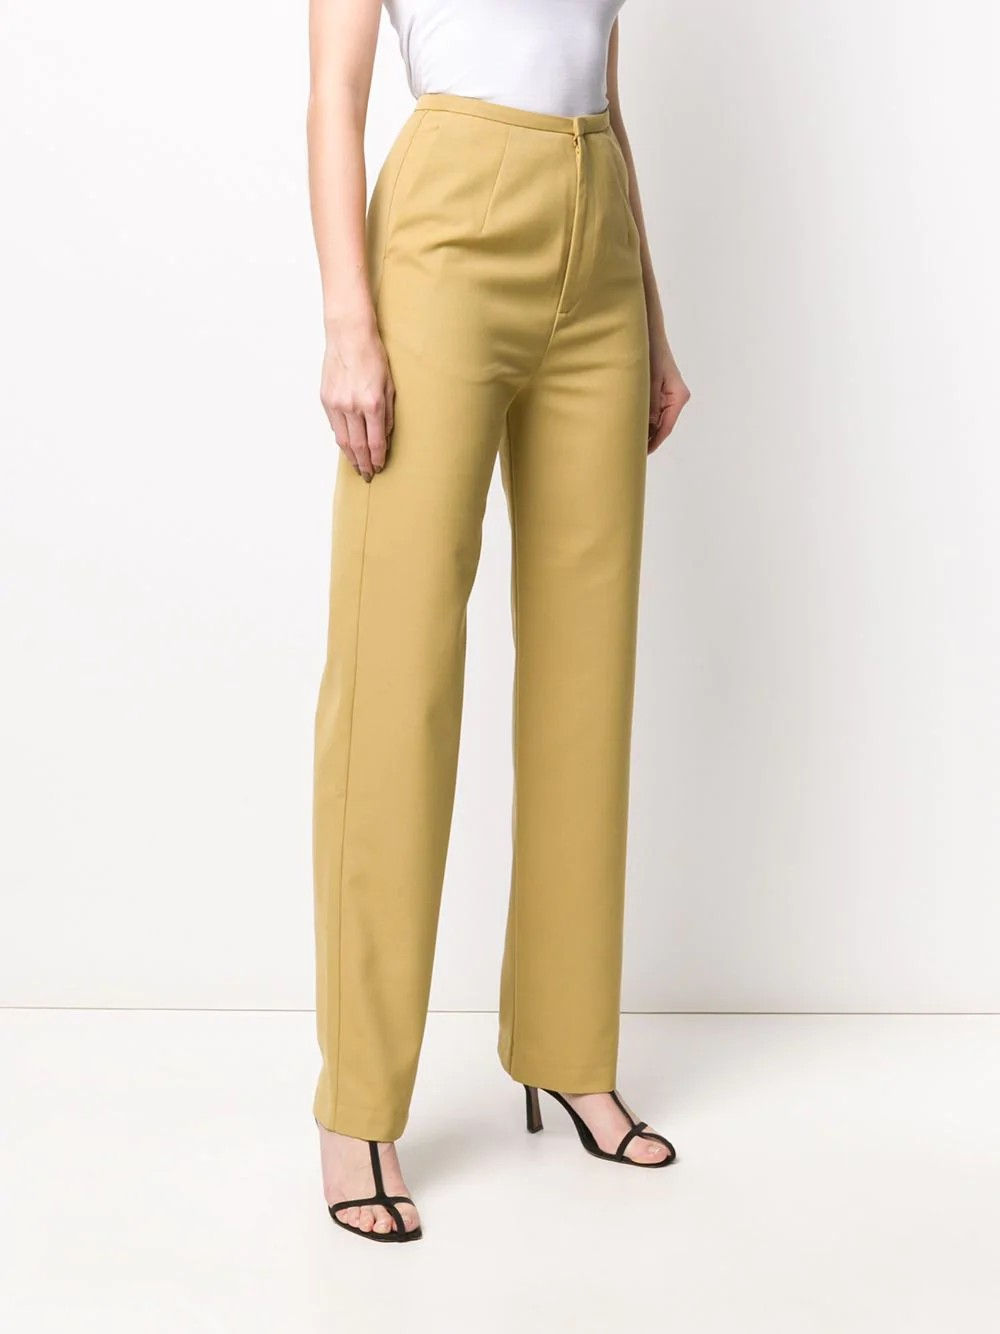 HIGH-WAISTED LONG TROUSERS WITH STRAIGHT LEGS